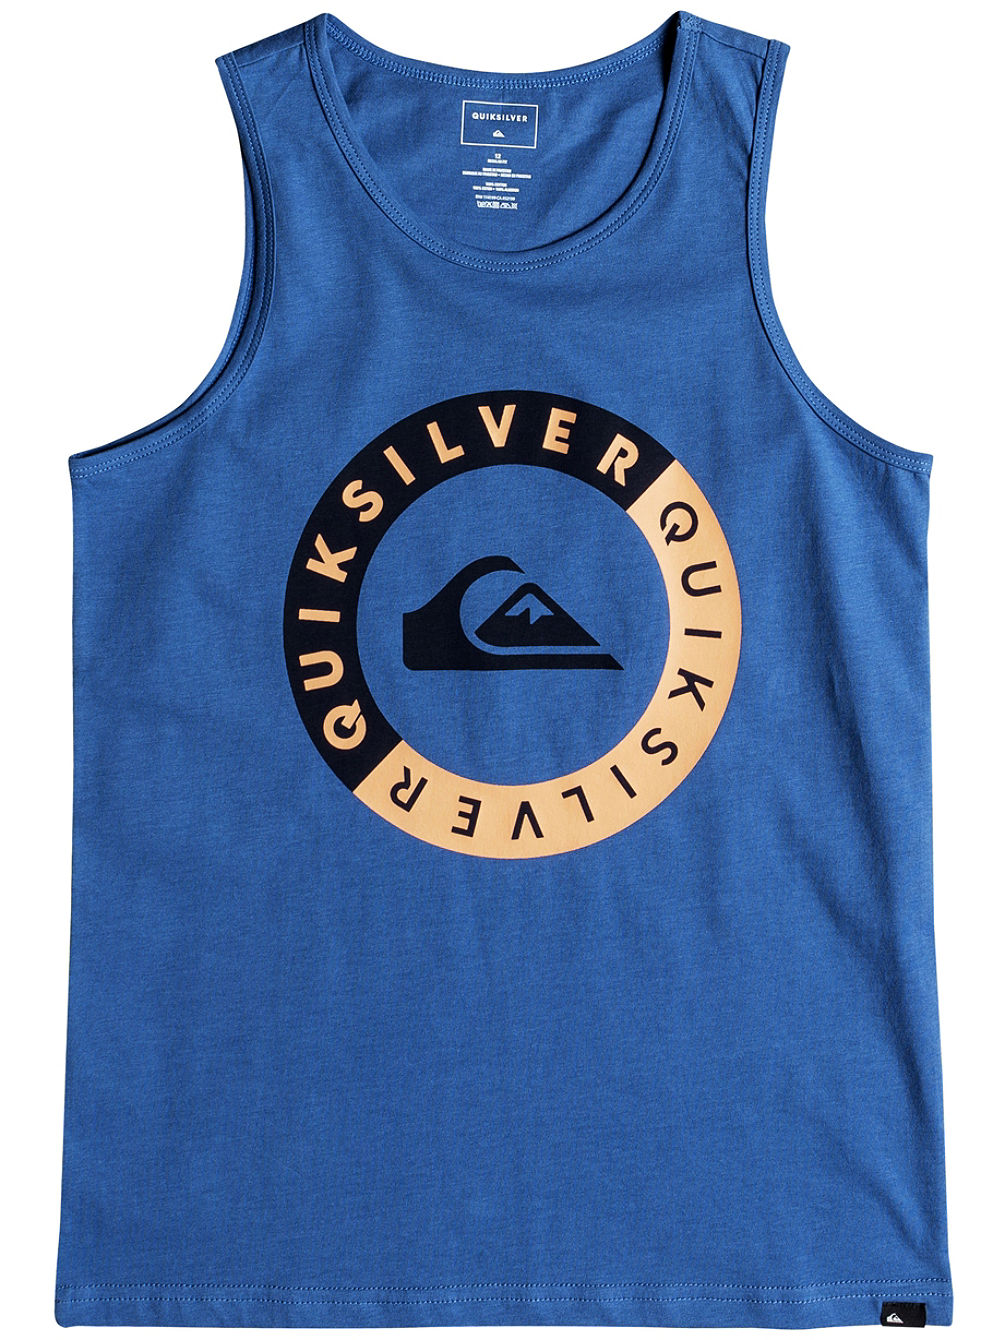 Tank Shores Away Tank Top Boys